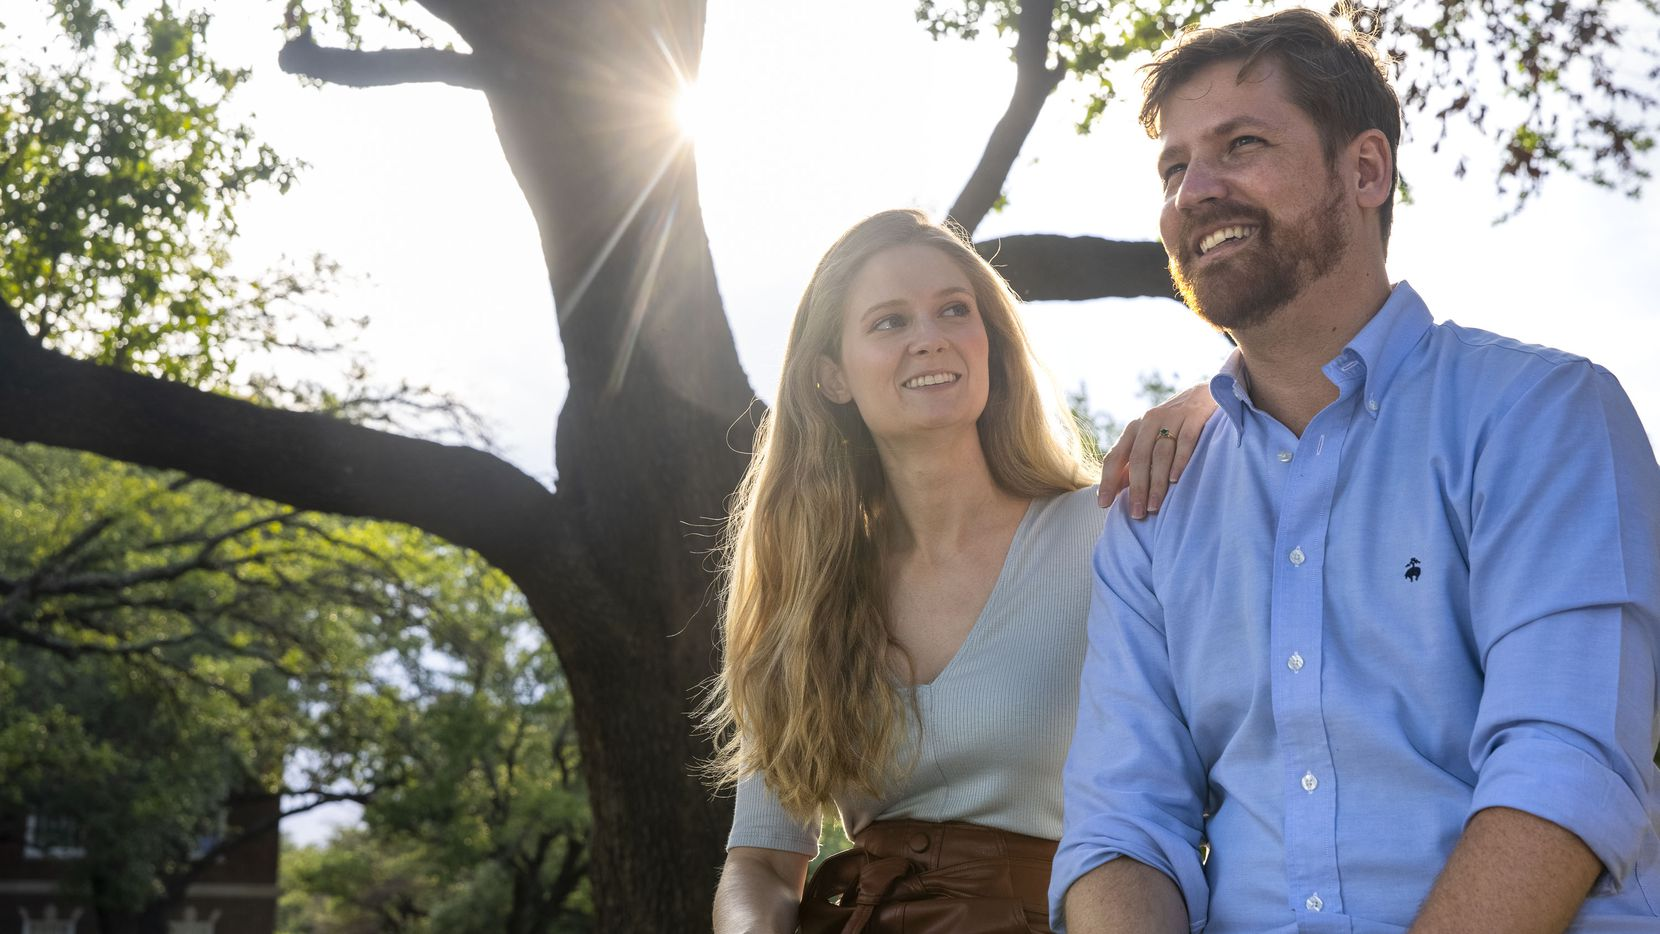 From left, James McCormick and Lauren Ammerman, fiancés and doctors in cell and molecular biology, laugh together during a portrait session on the Southern Methodist University campus in Dallas on Monday, June 21, 2021. The couple met during their doctoral programs while conducting research around a protein that could improve memory loss. (Lynda M. González/The Dallas Morning News)